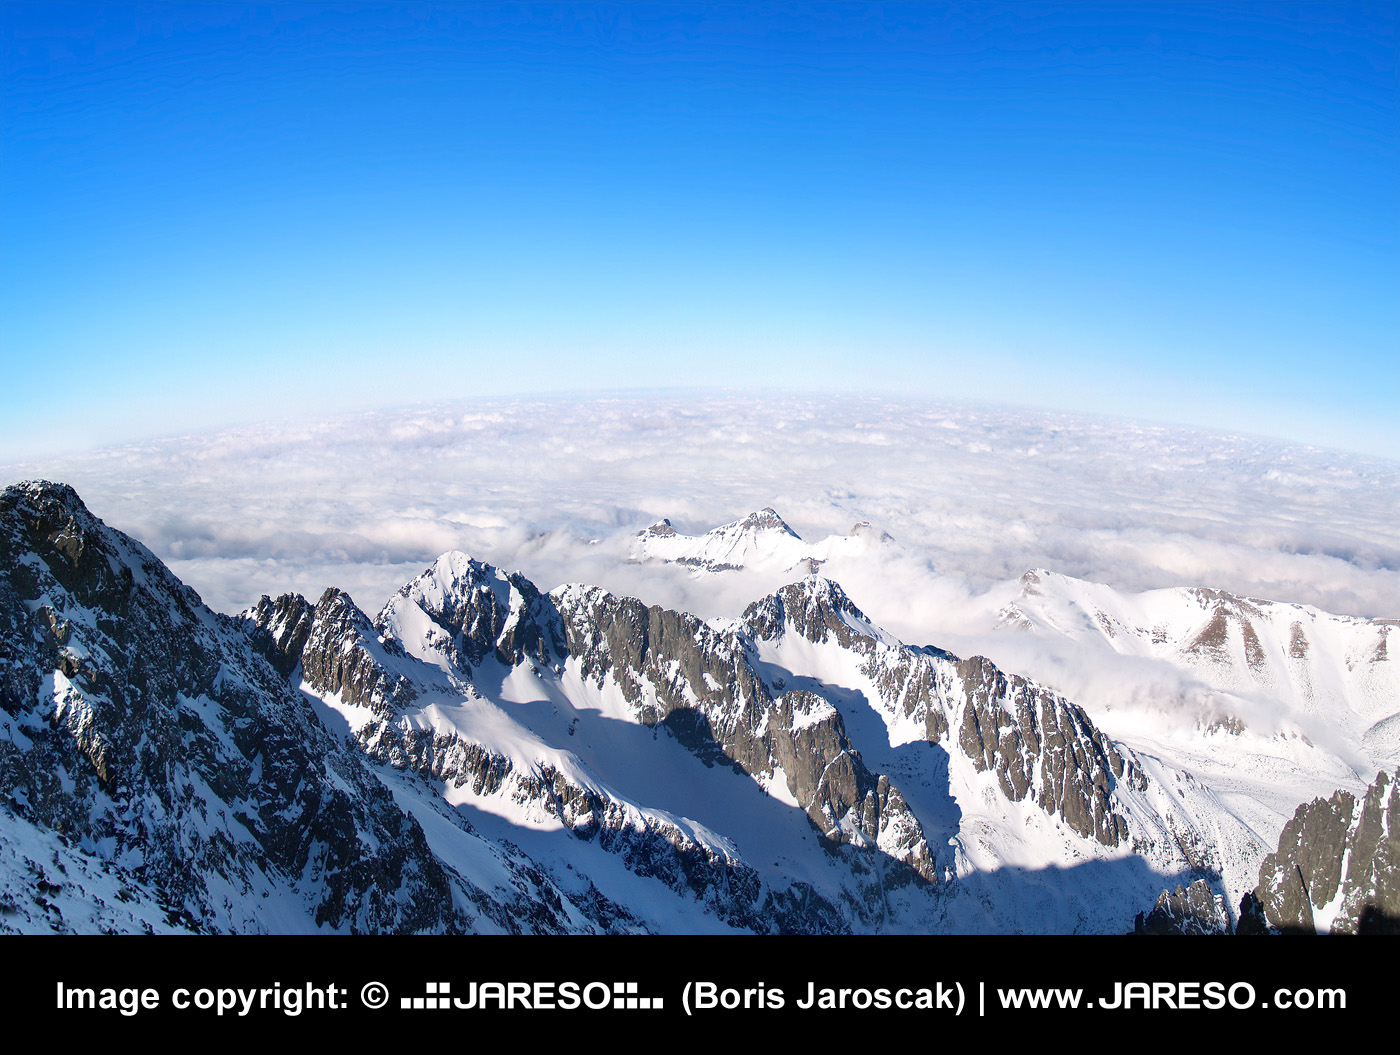 web_gplus_fb_panorama_high_tatras_lomnicky_peak_outlook_winter_p2147355xp21473560x.jpg